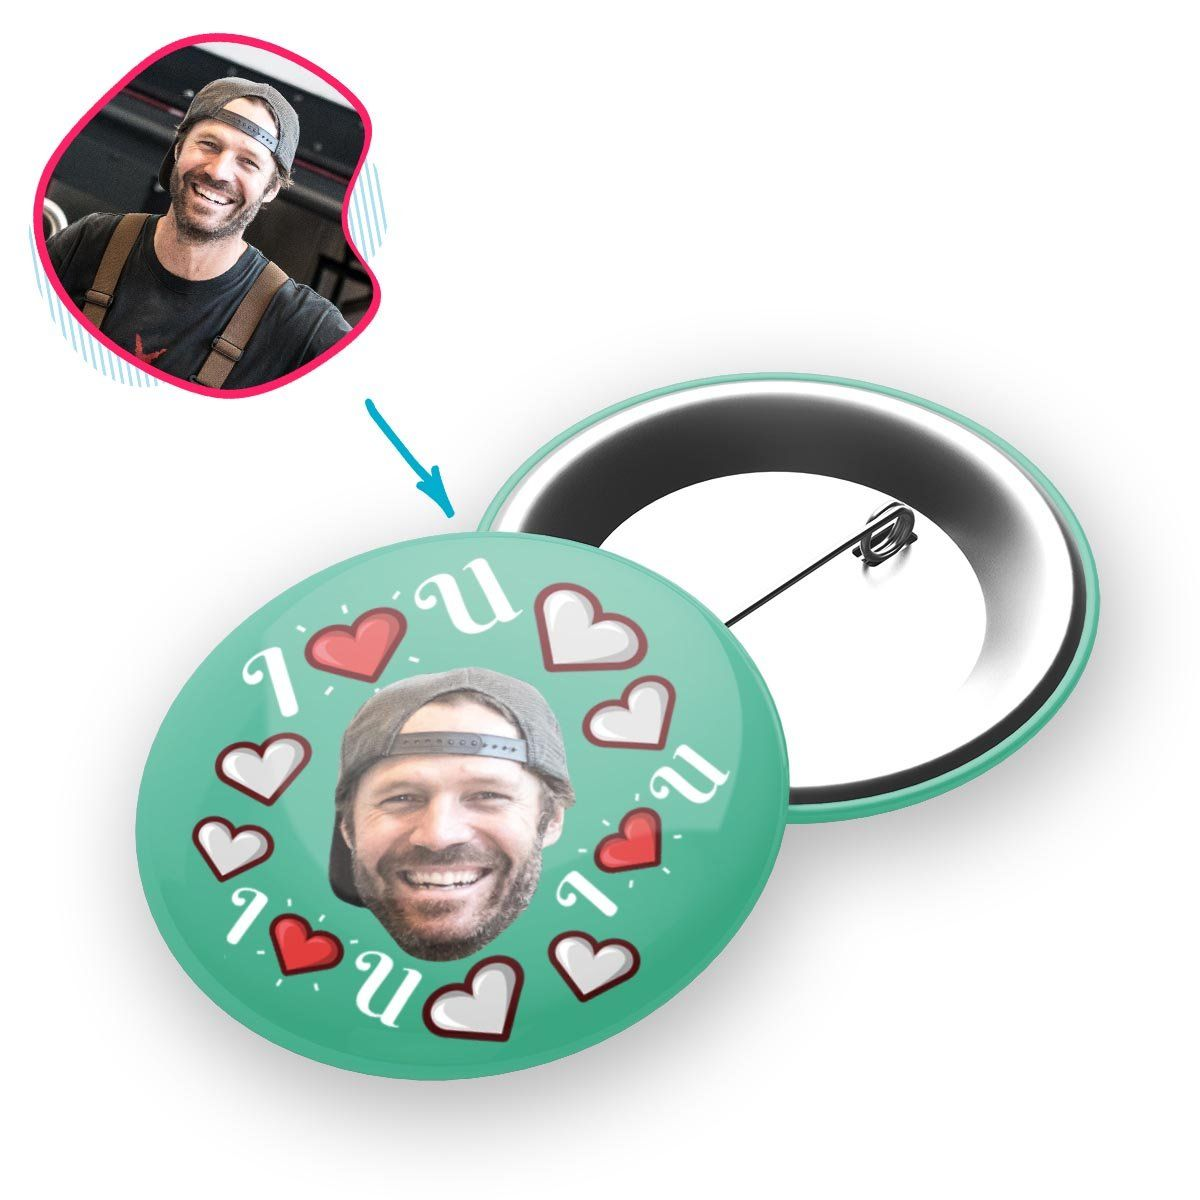 mint I <3 You pin personalized with photo of face printed on it